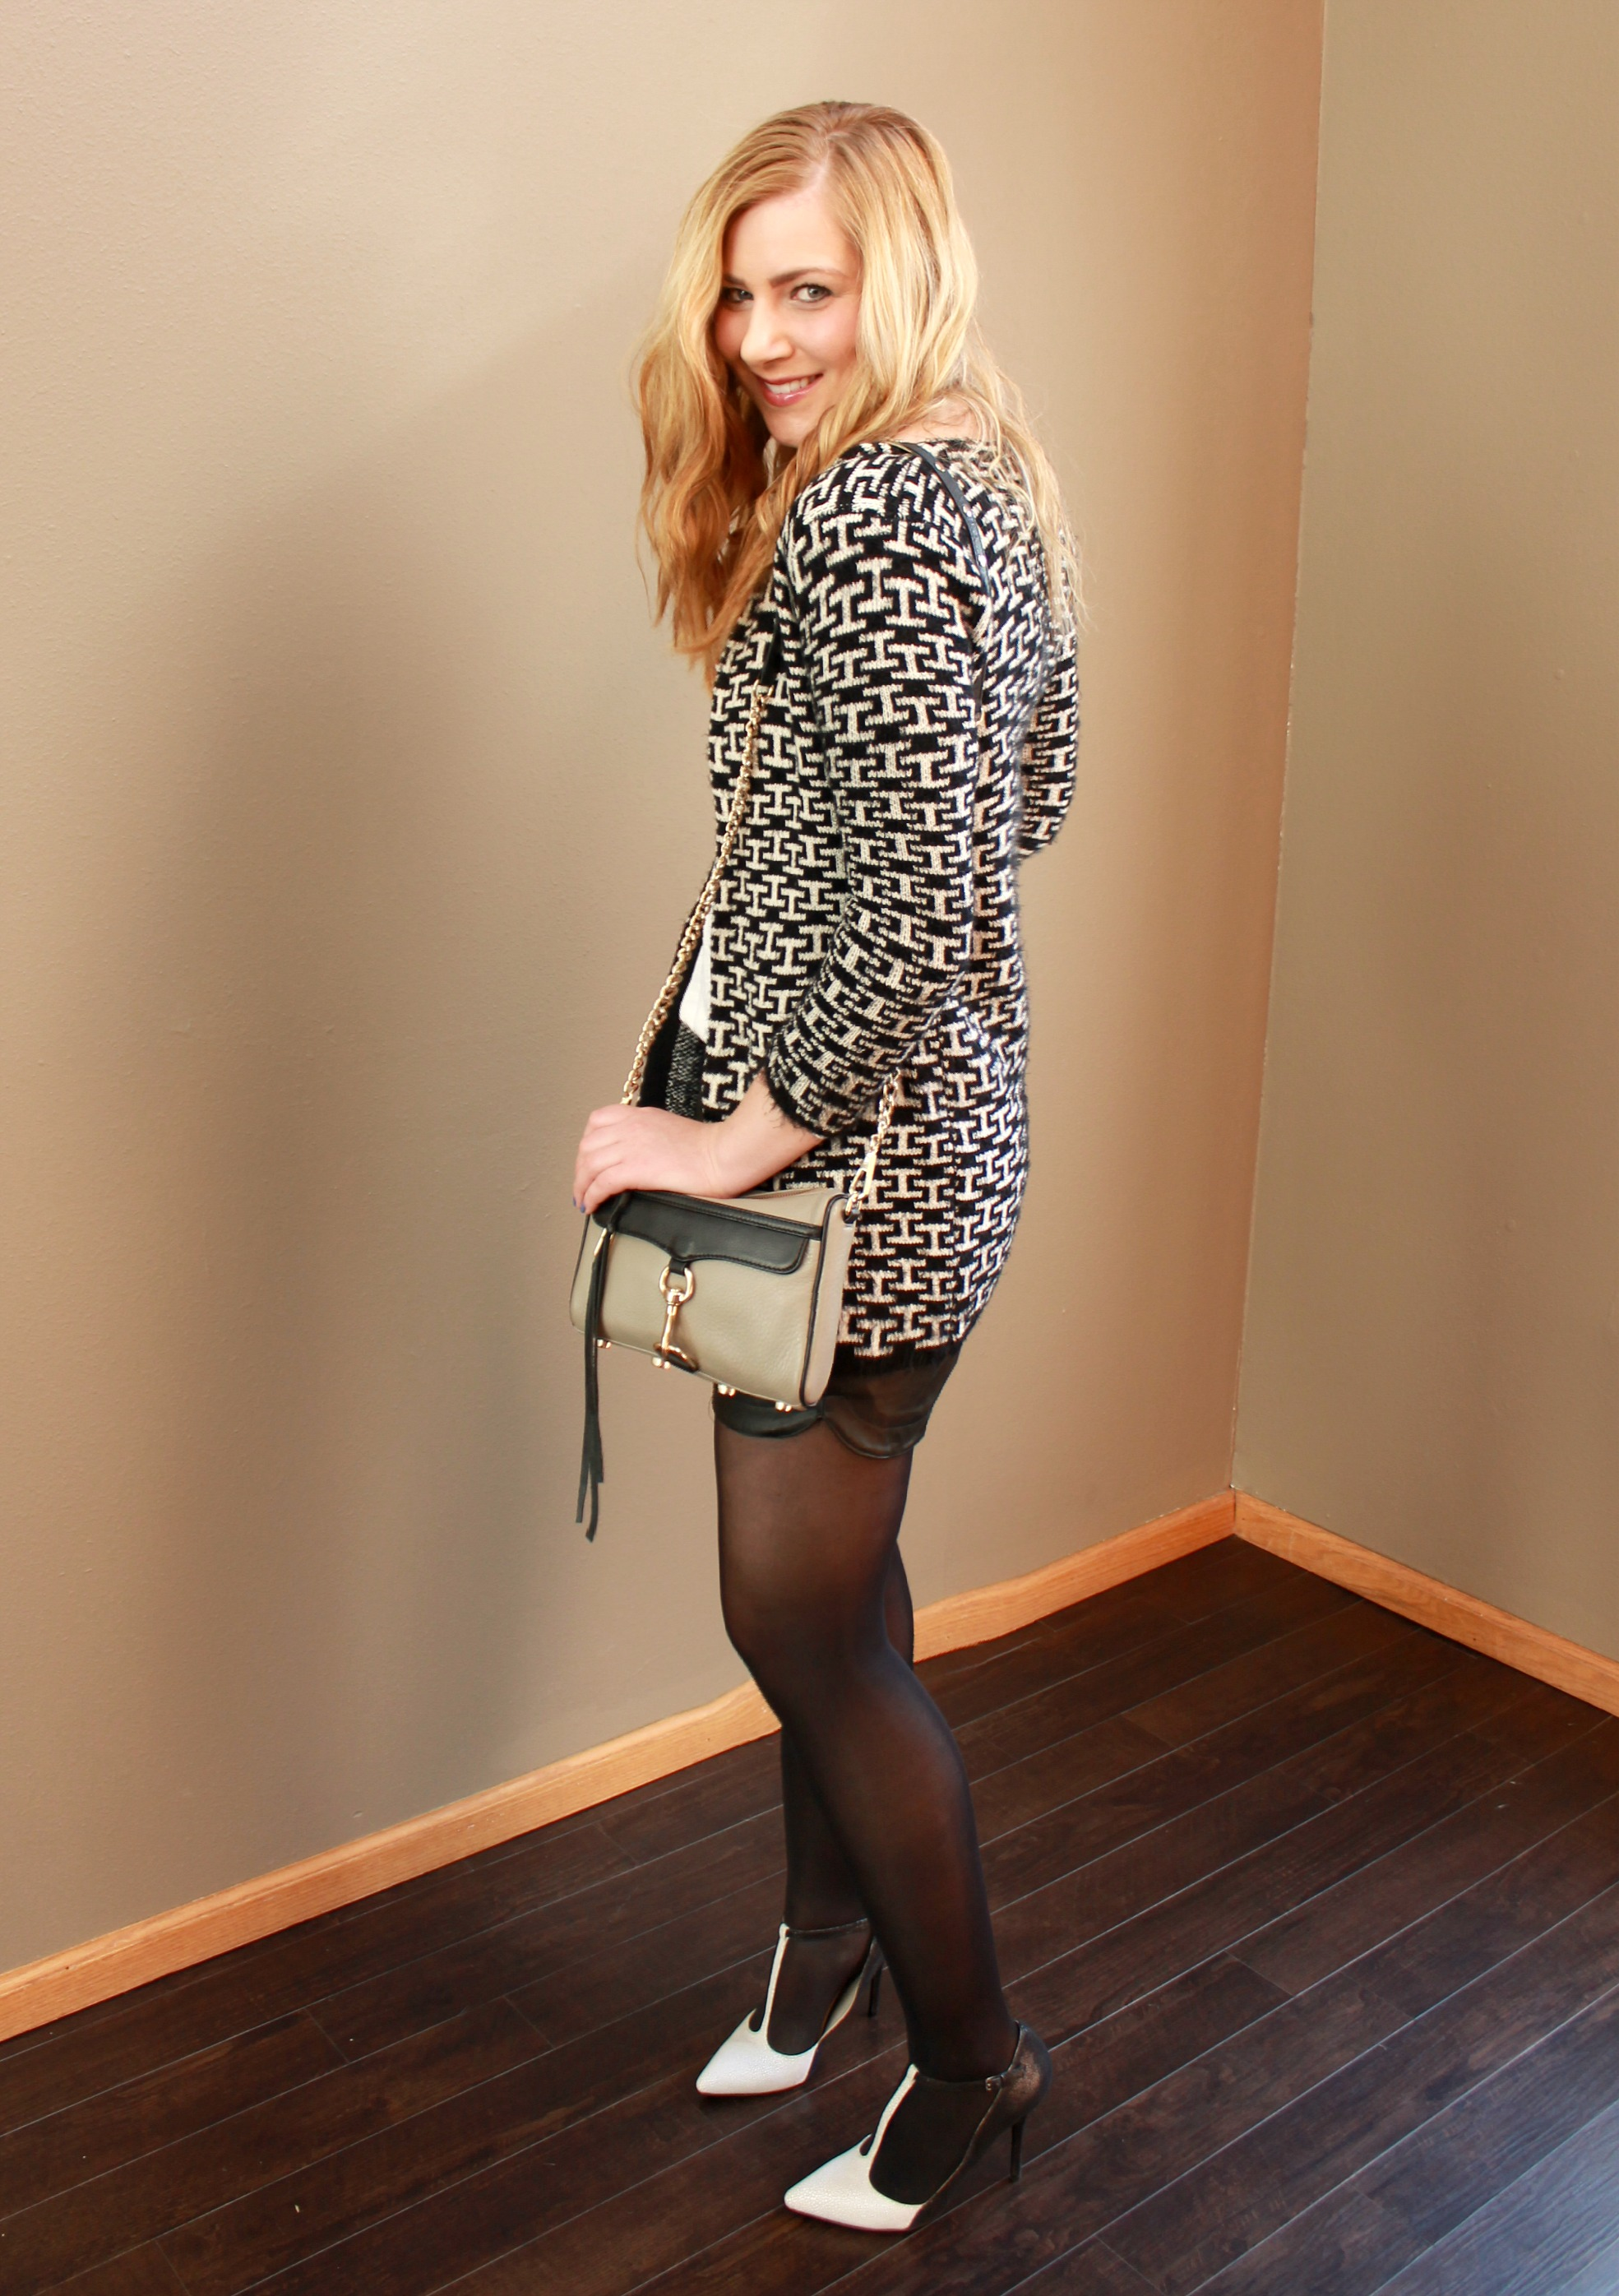 Patterned sweater + shorts and tights